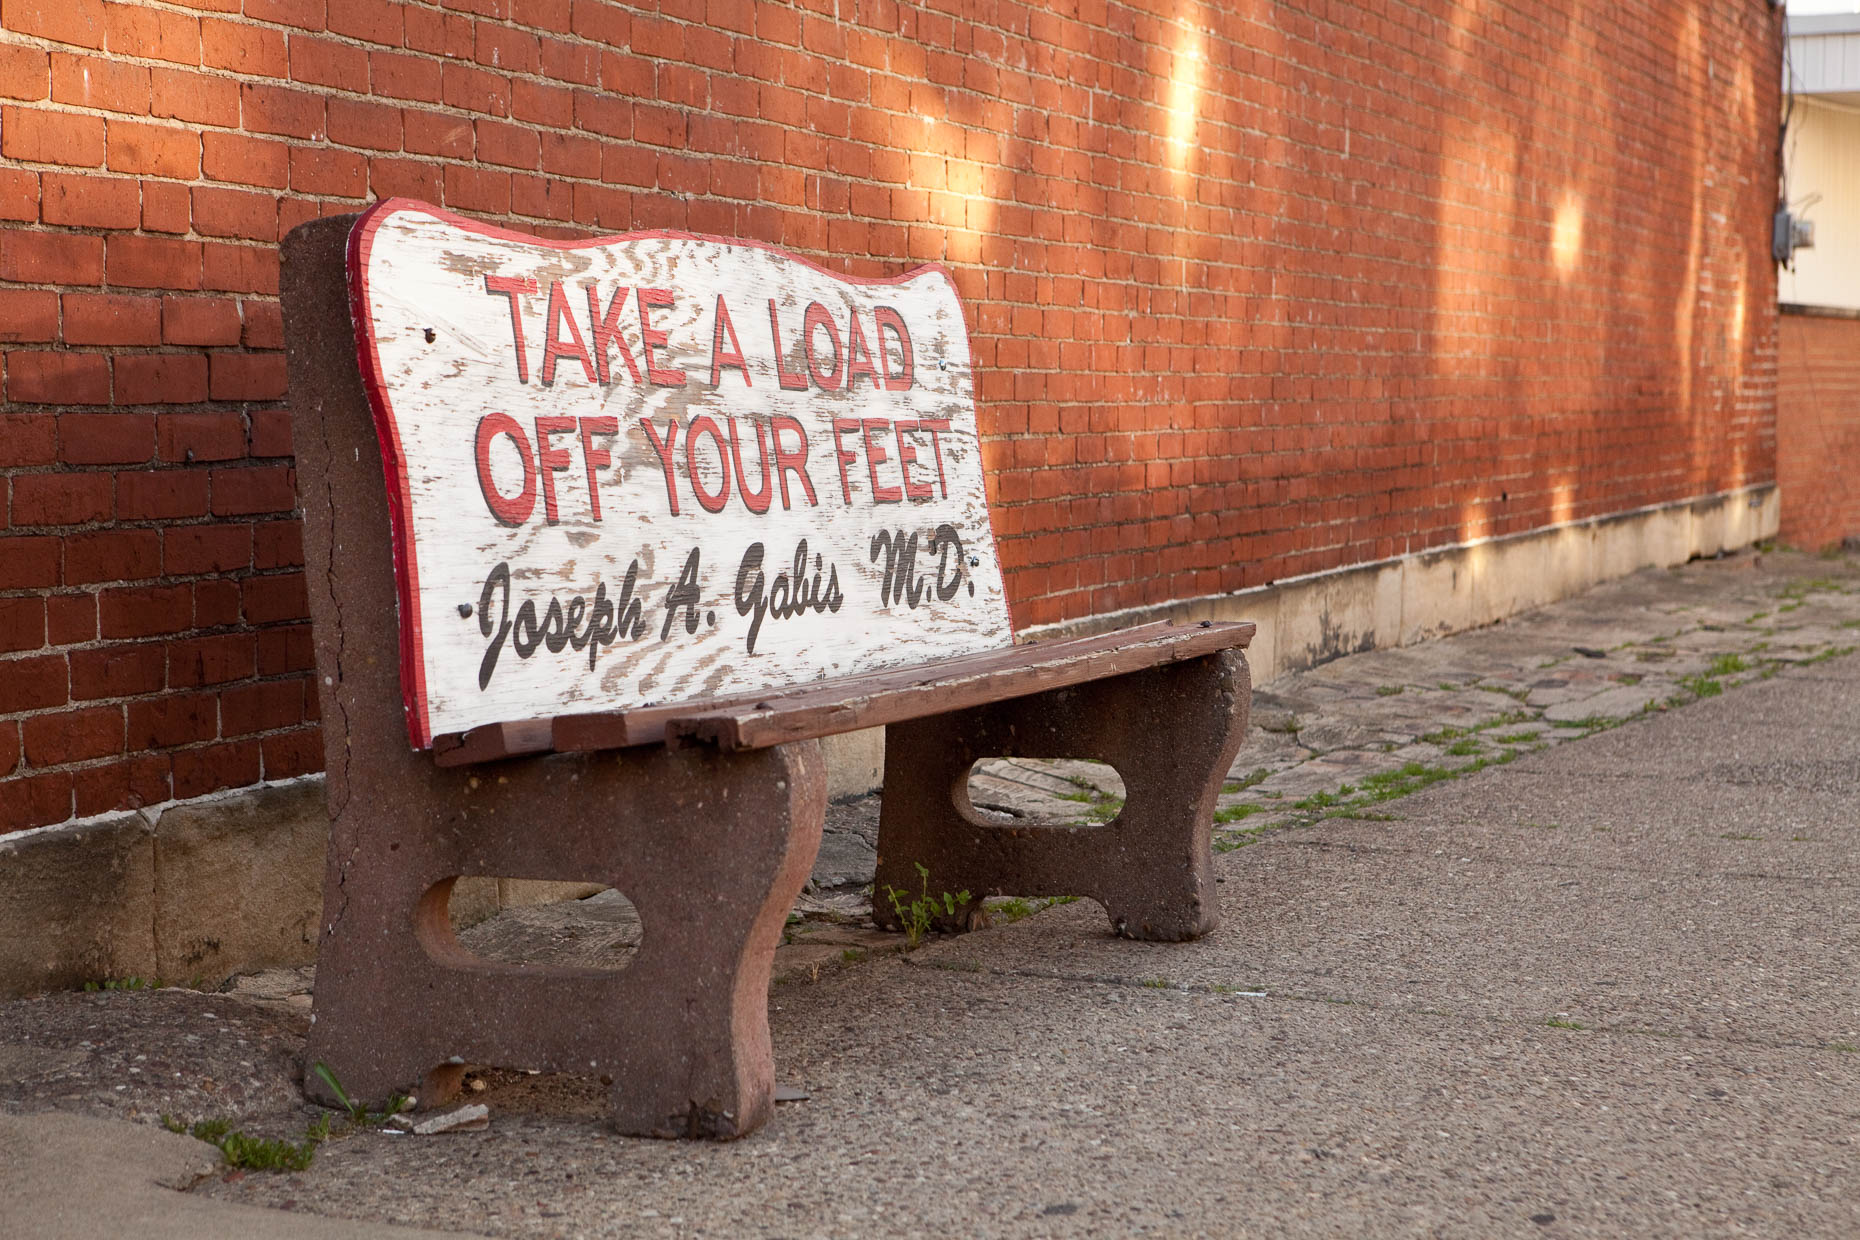 Bus bench with TAKE A LOAD OFF YOUR FEET signage by David Zaitz